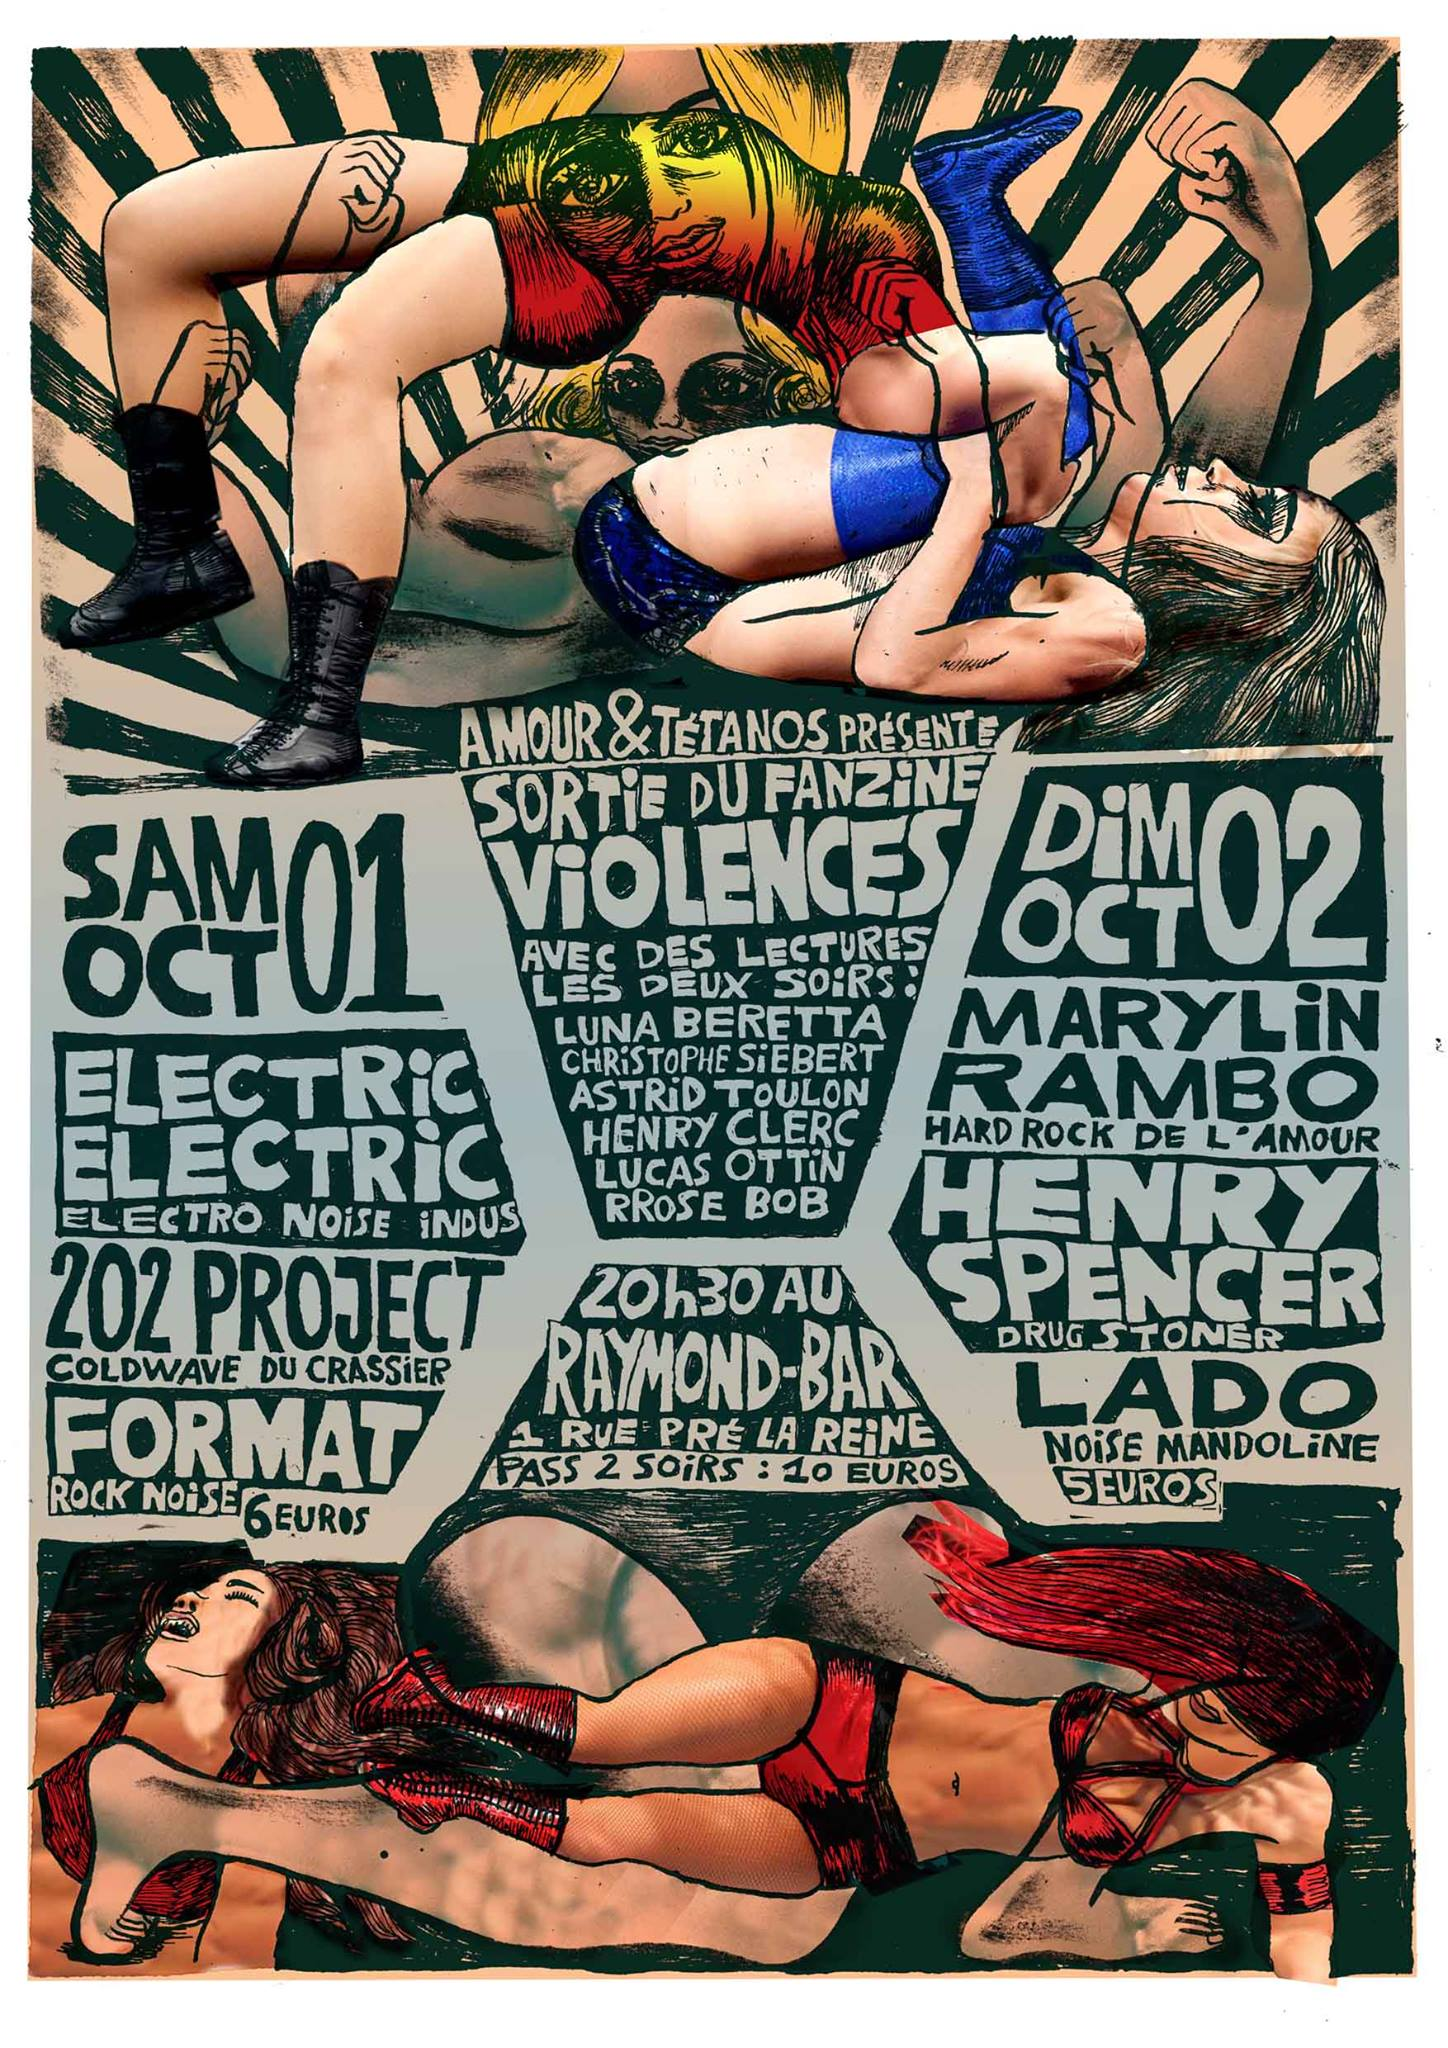 Festival Amour et Tétanos: Electric Electric / 202 project / Marylin Rambo / Lado / Henry Spener / Format